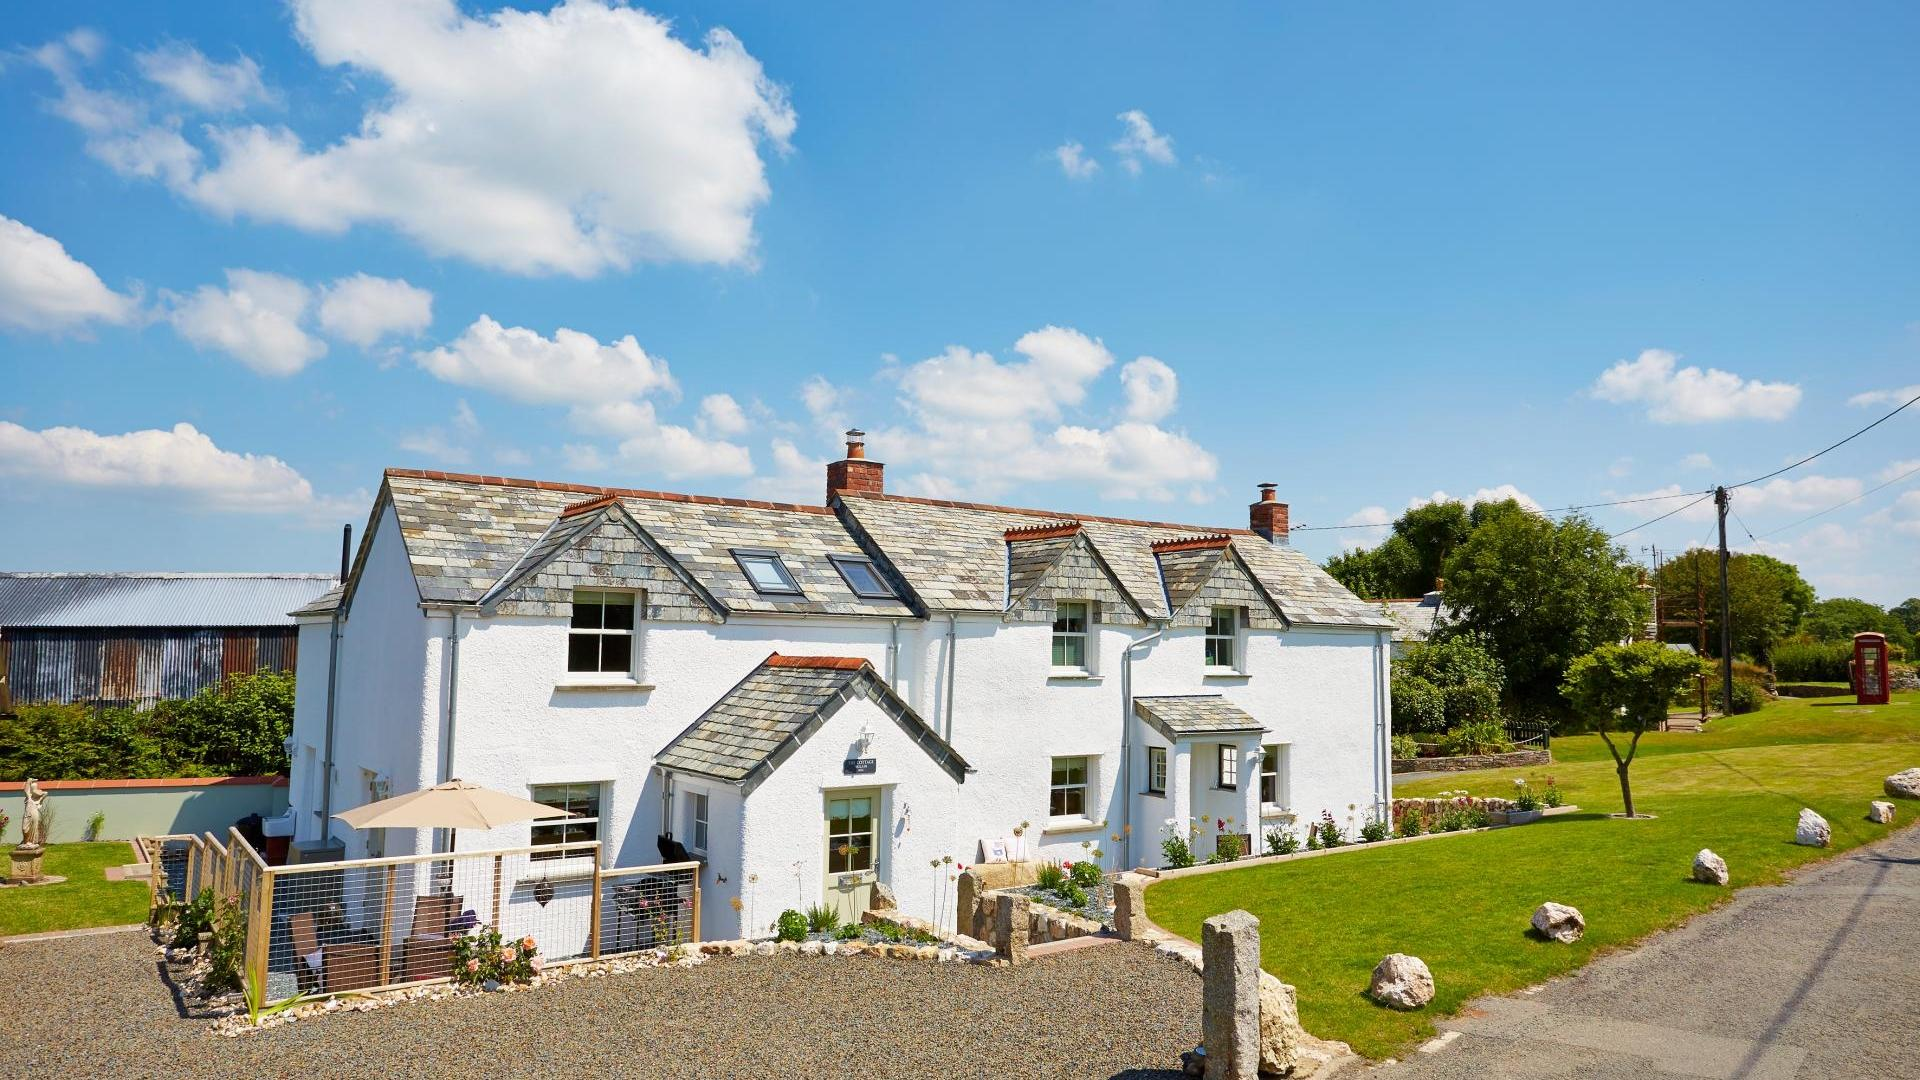 1 bedroom baby-friendly holiday cottage in Cornwall